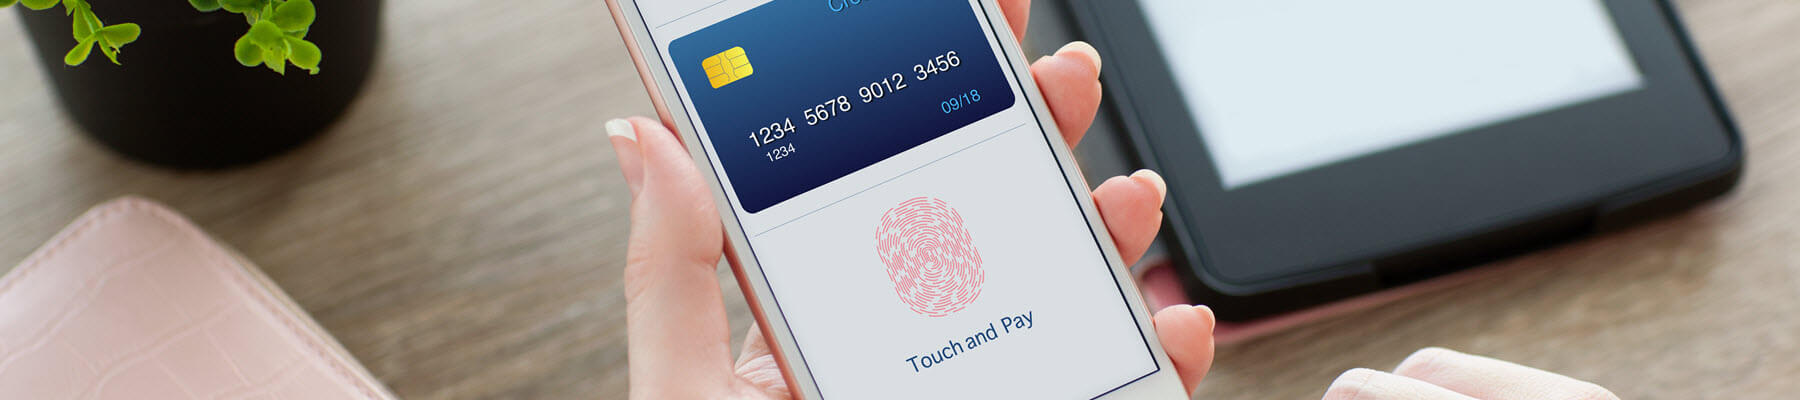 Woman using Touch ID on mobile phone